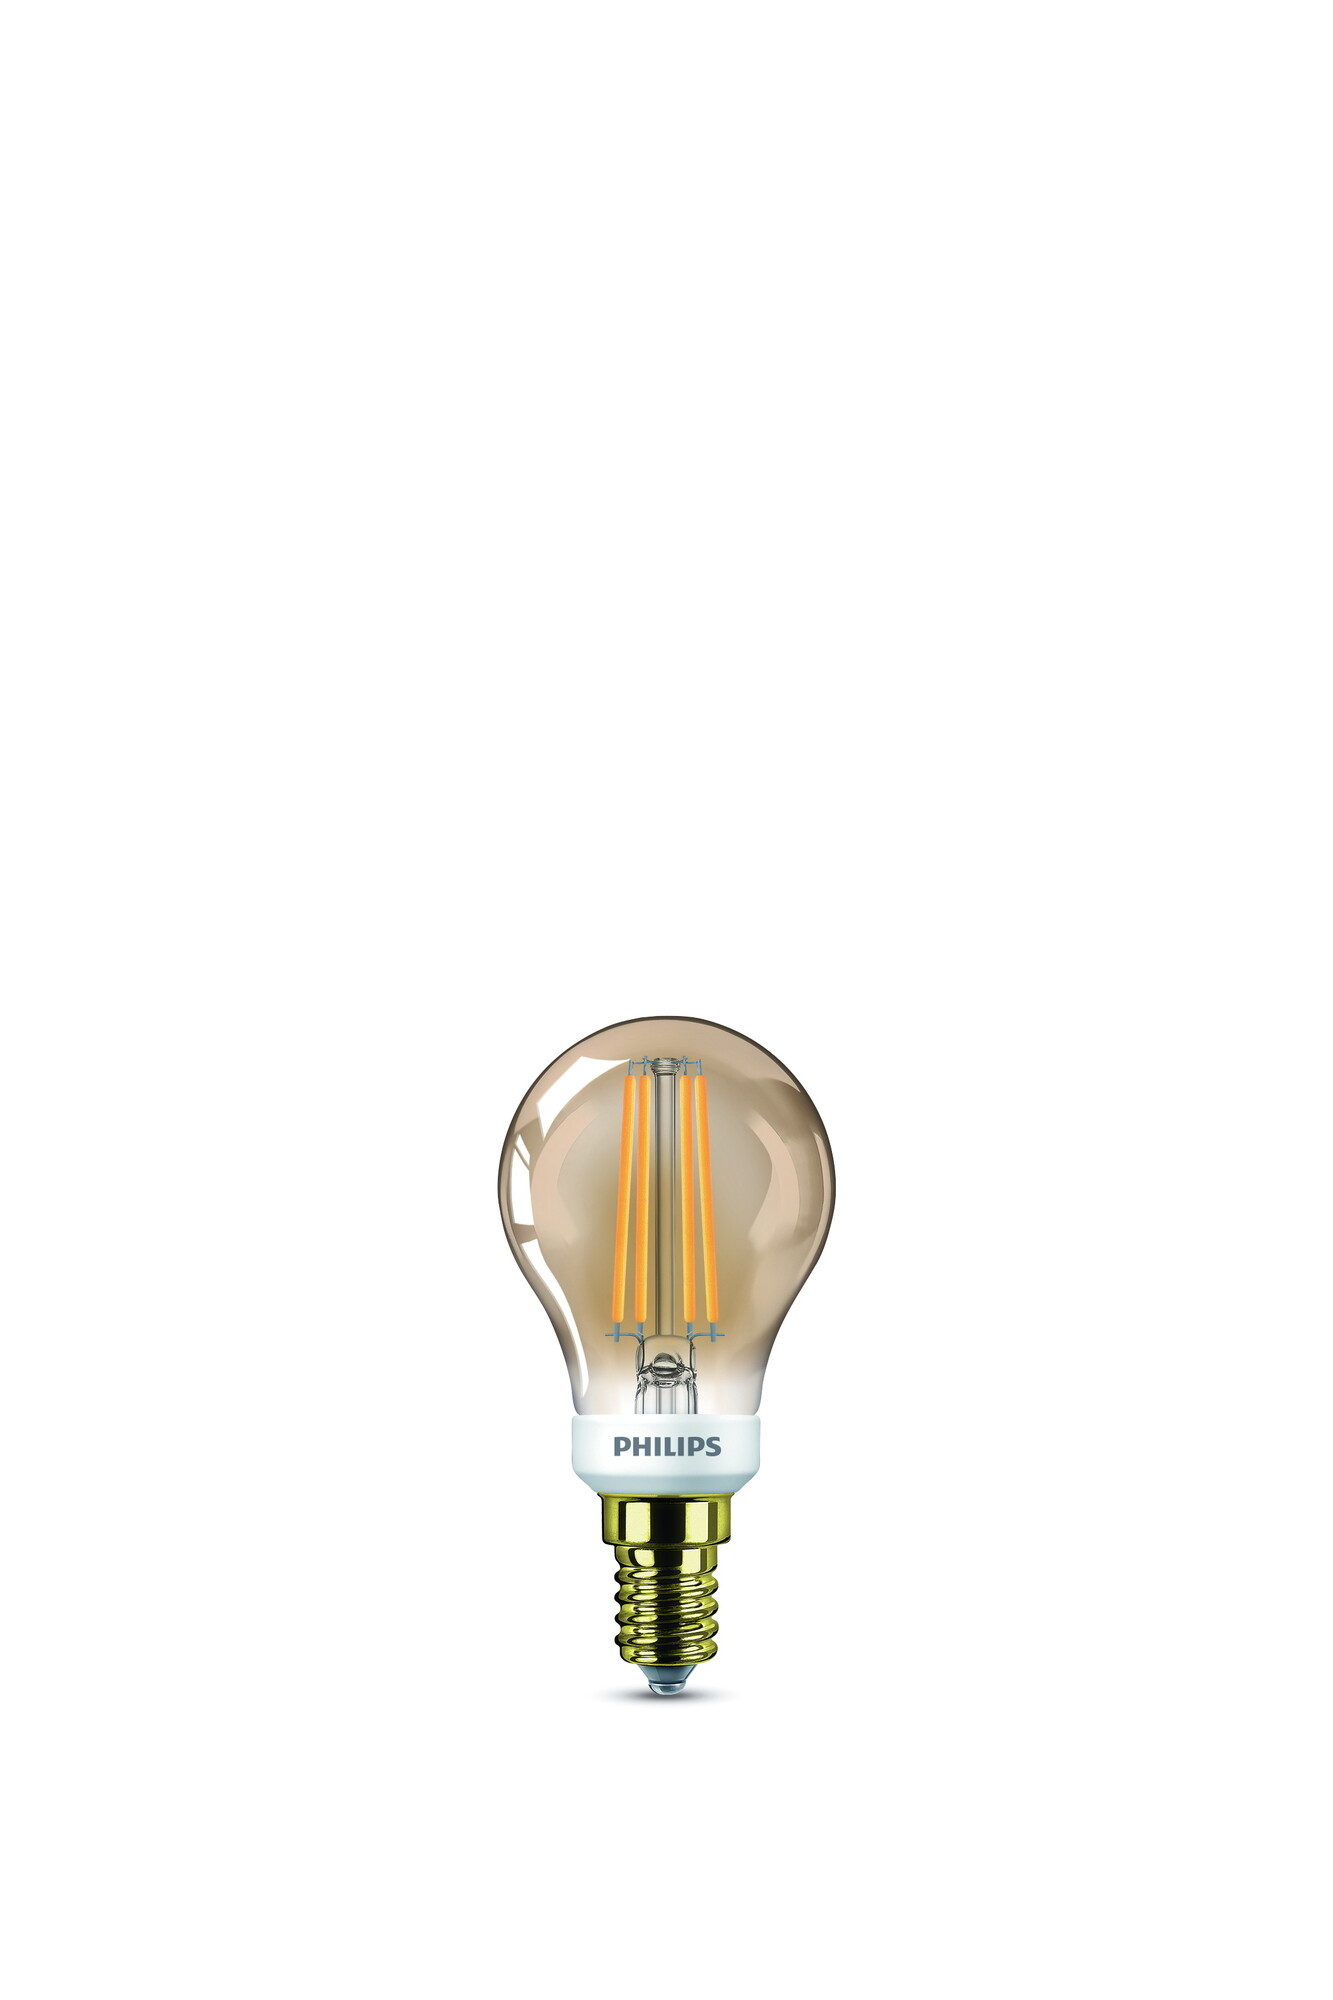 Philips LED classic E14 5W 350lm 2200K Coating doré